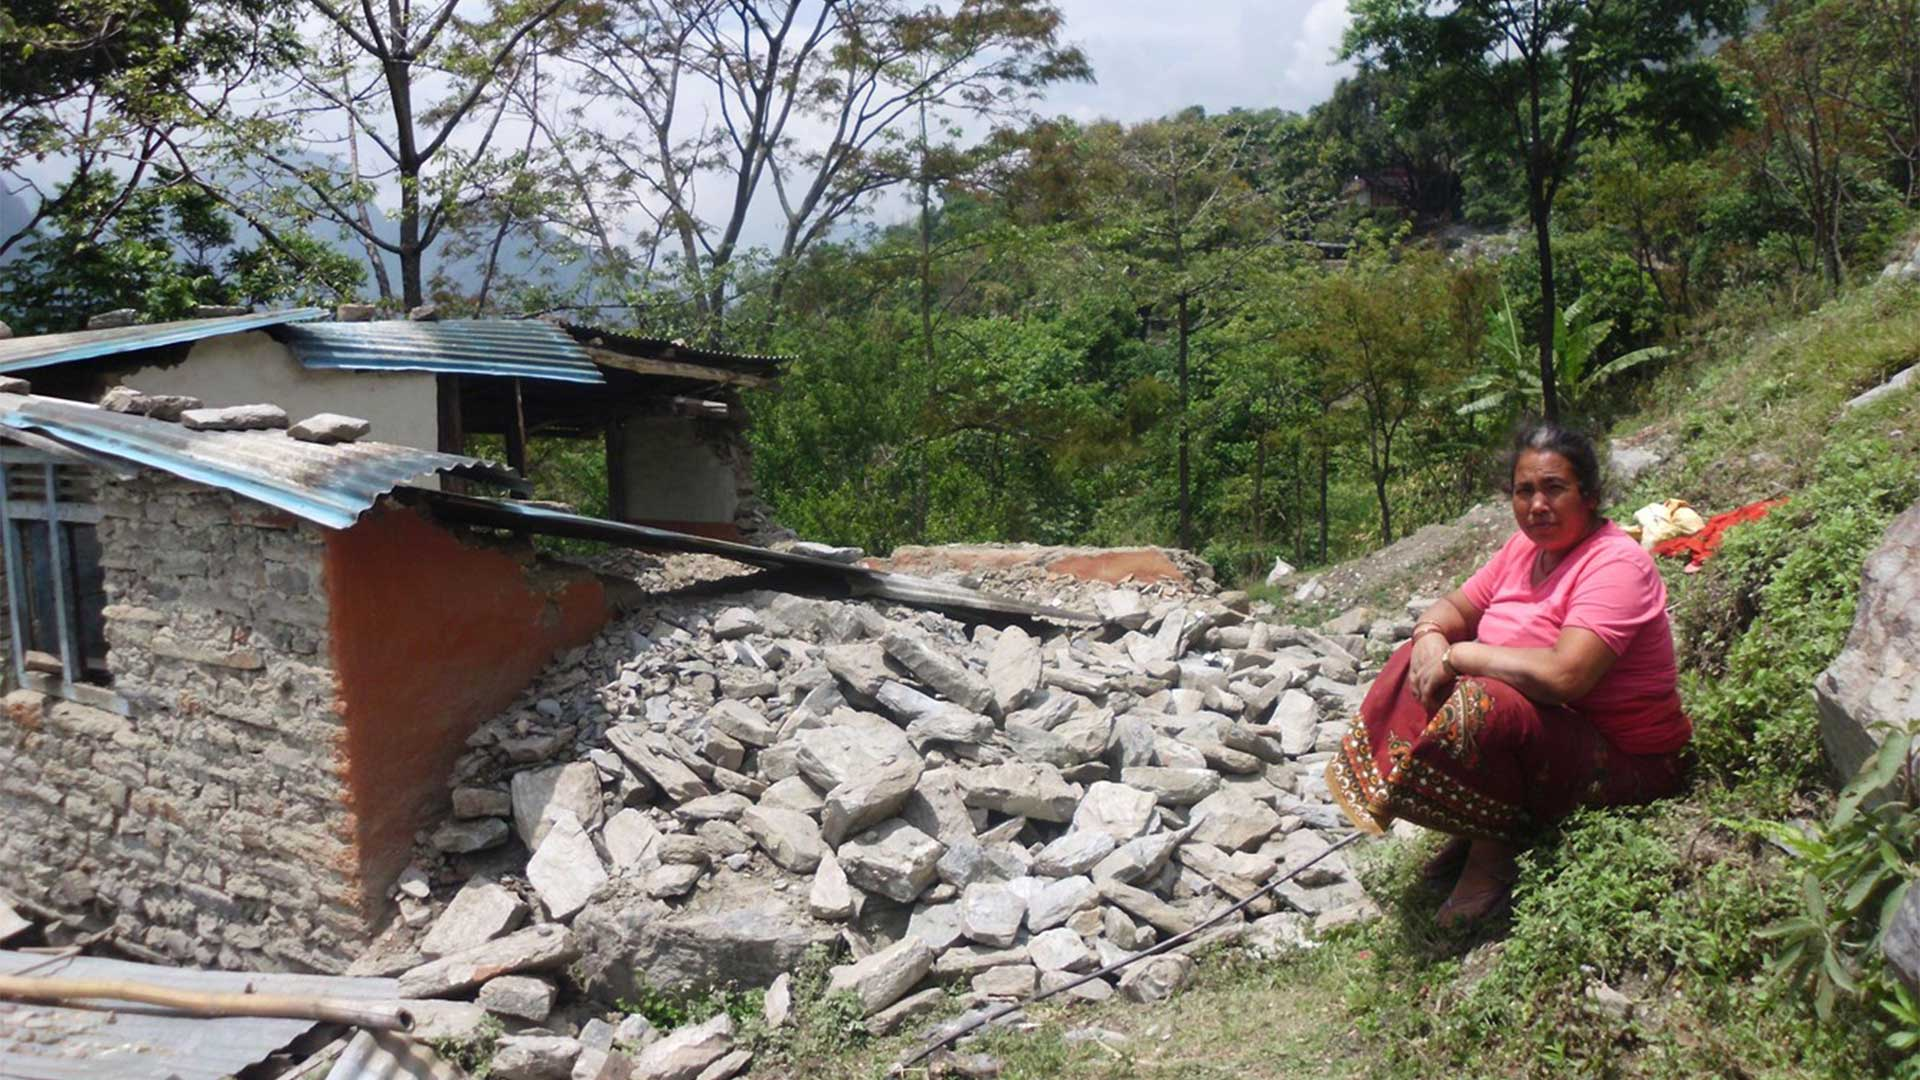 Carer next to earthquake damaged home in Nepal